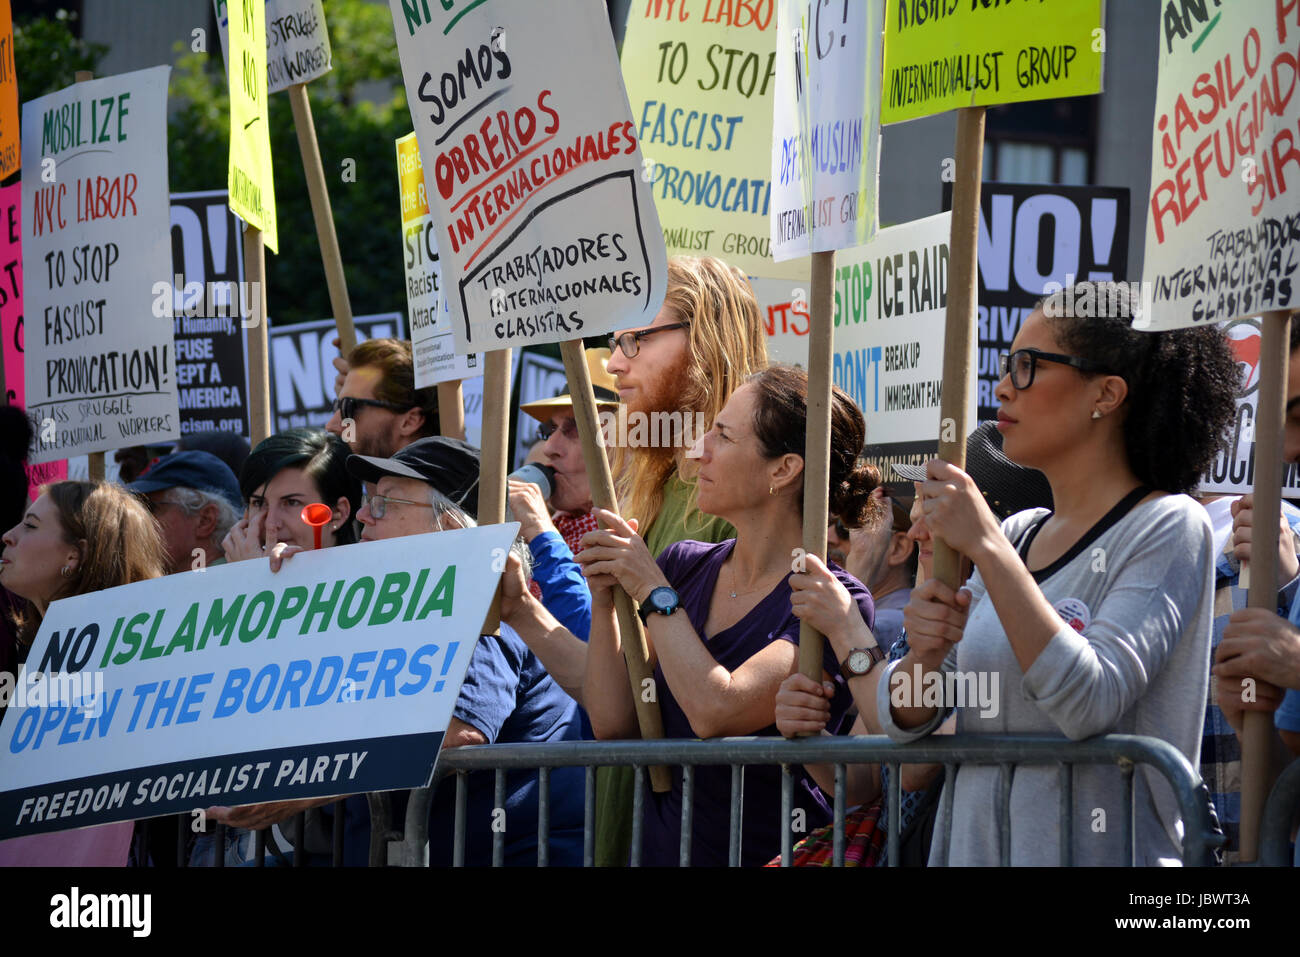 People at a counter protest to a anti-Sharia rally in New York City. - Stock Image